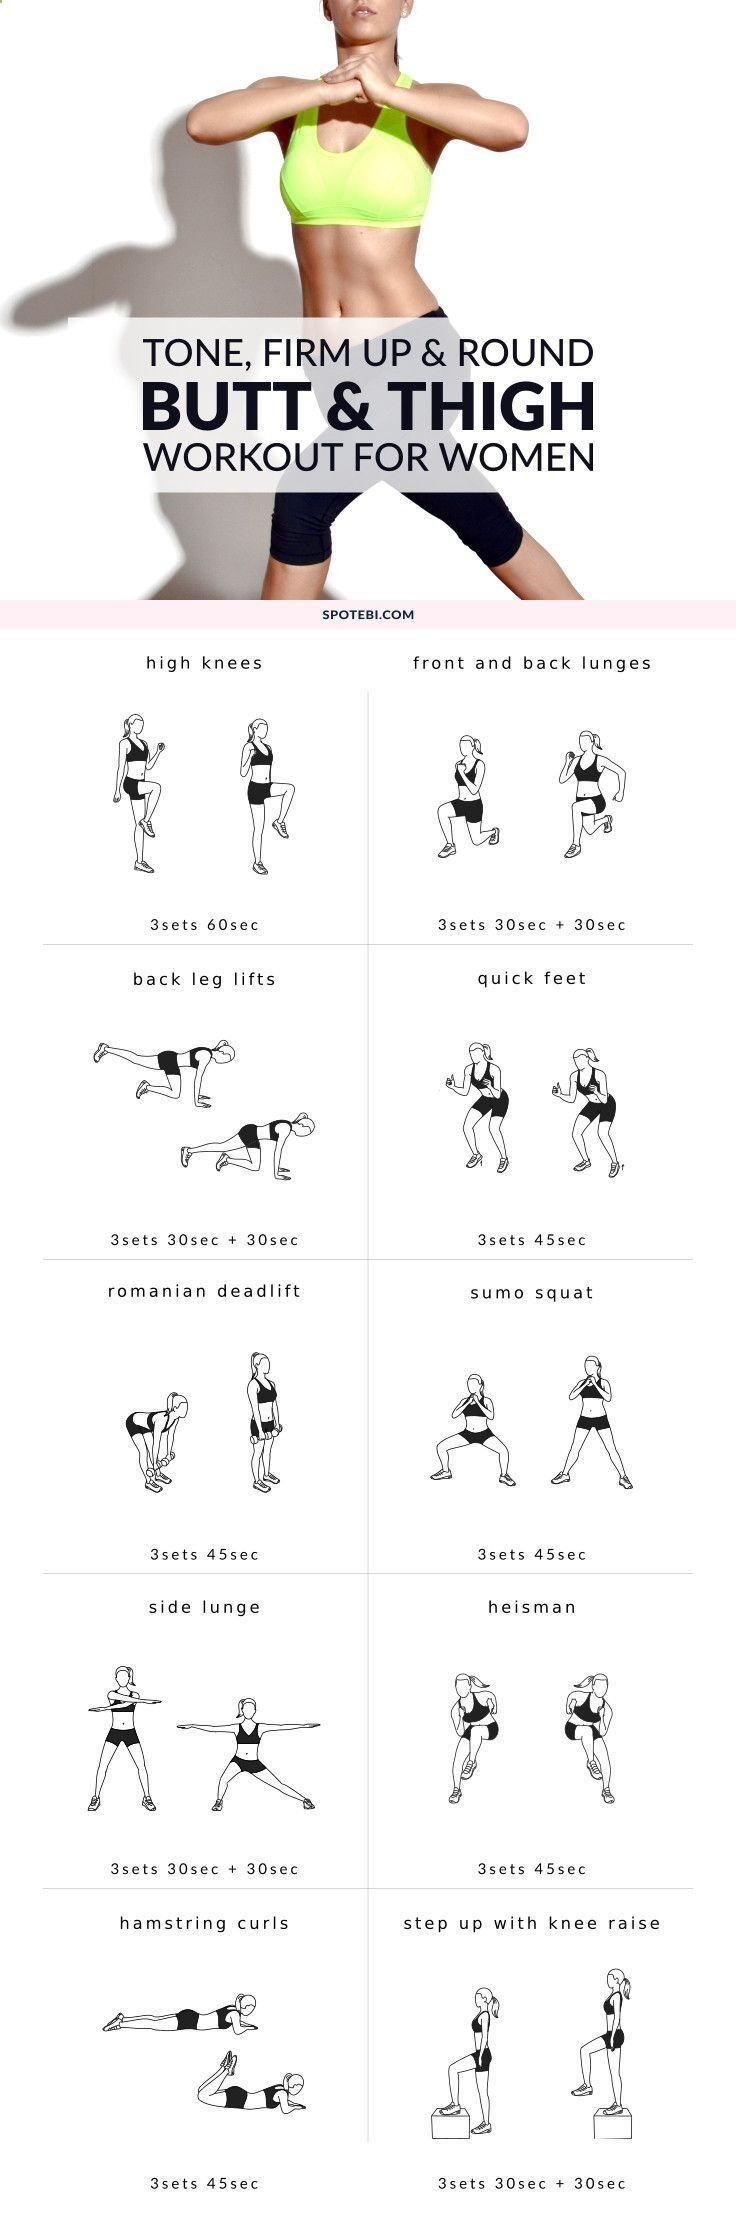 How to start yoga for weight loss image 9